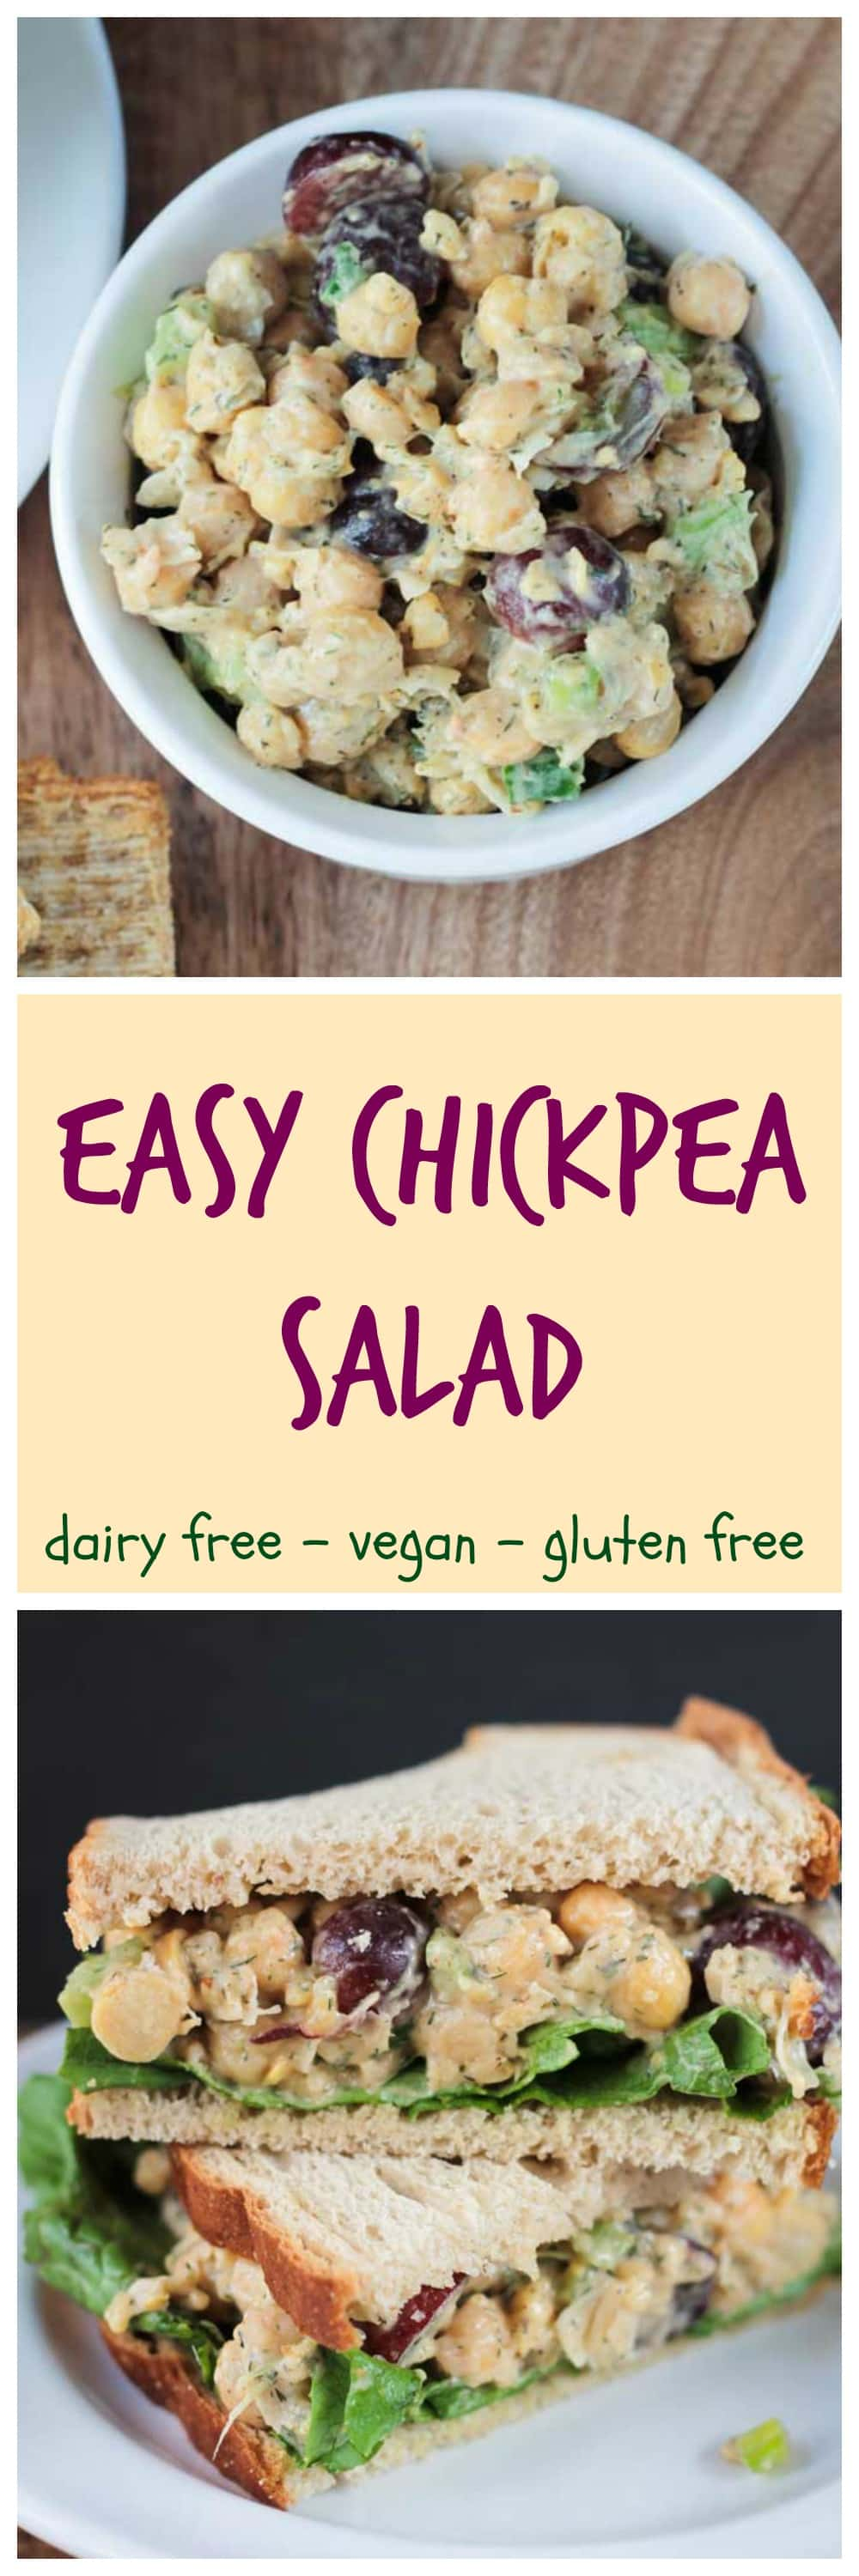 Chickpea Salad - quick and easy | vegan | dairy free | gluten free | sandwich filling | chicken salad | picnic | party | potluck | lunch | lunchbox | grapes | celery |